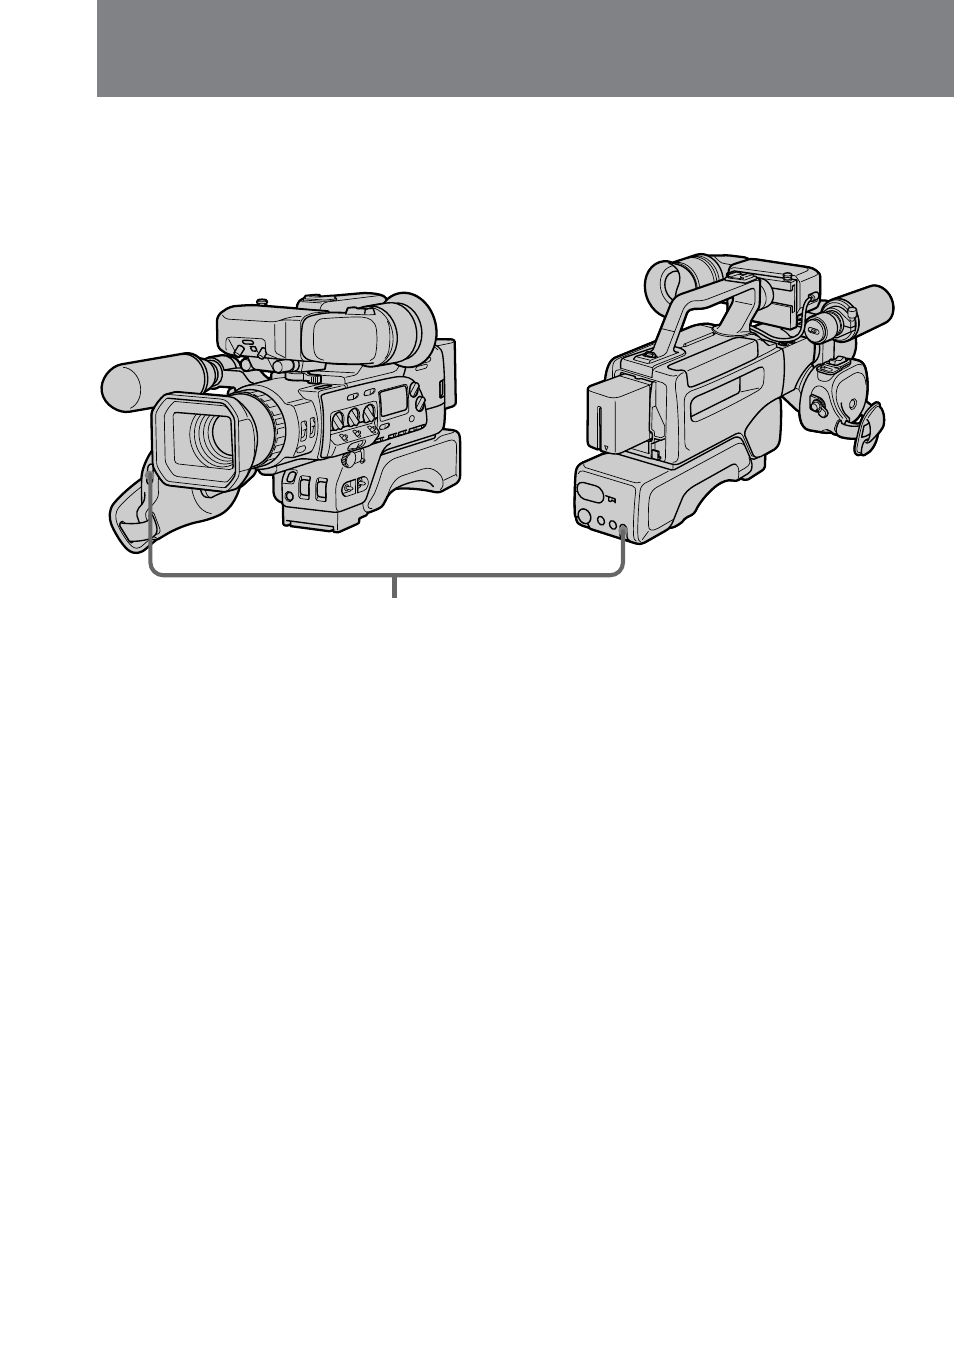 identifying the parts sony dcr vx9000 user manual page 90 96 rh manualsdir com Sony Operating Manuals ICD-UX523 Sony Operating Manuals ICD-UX523